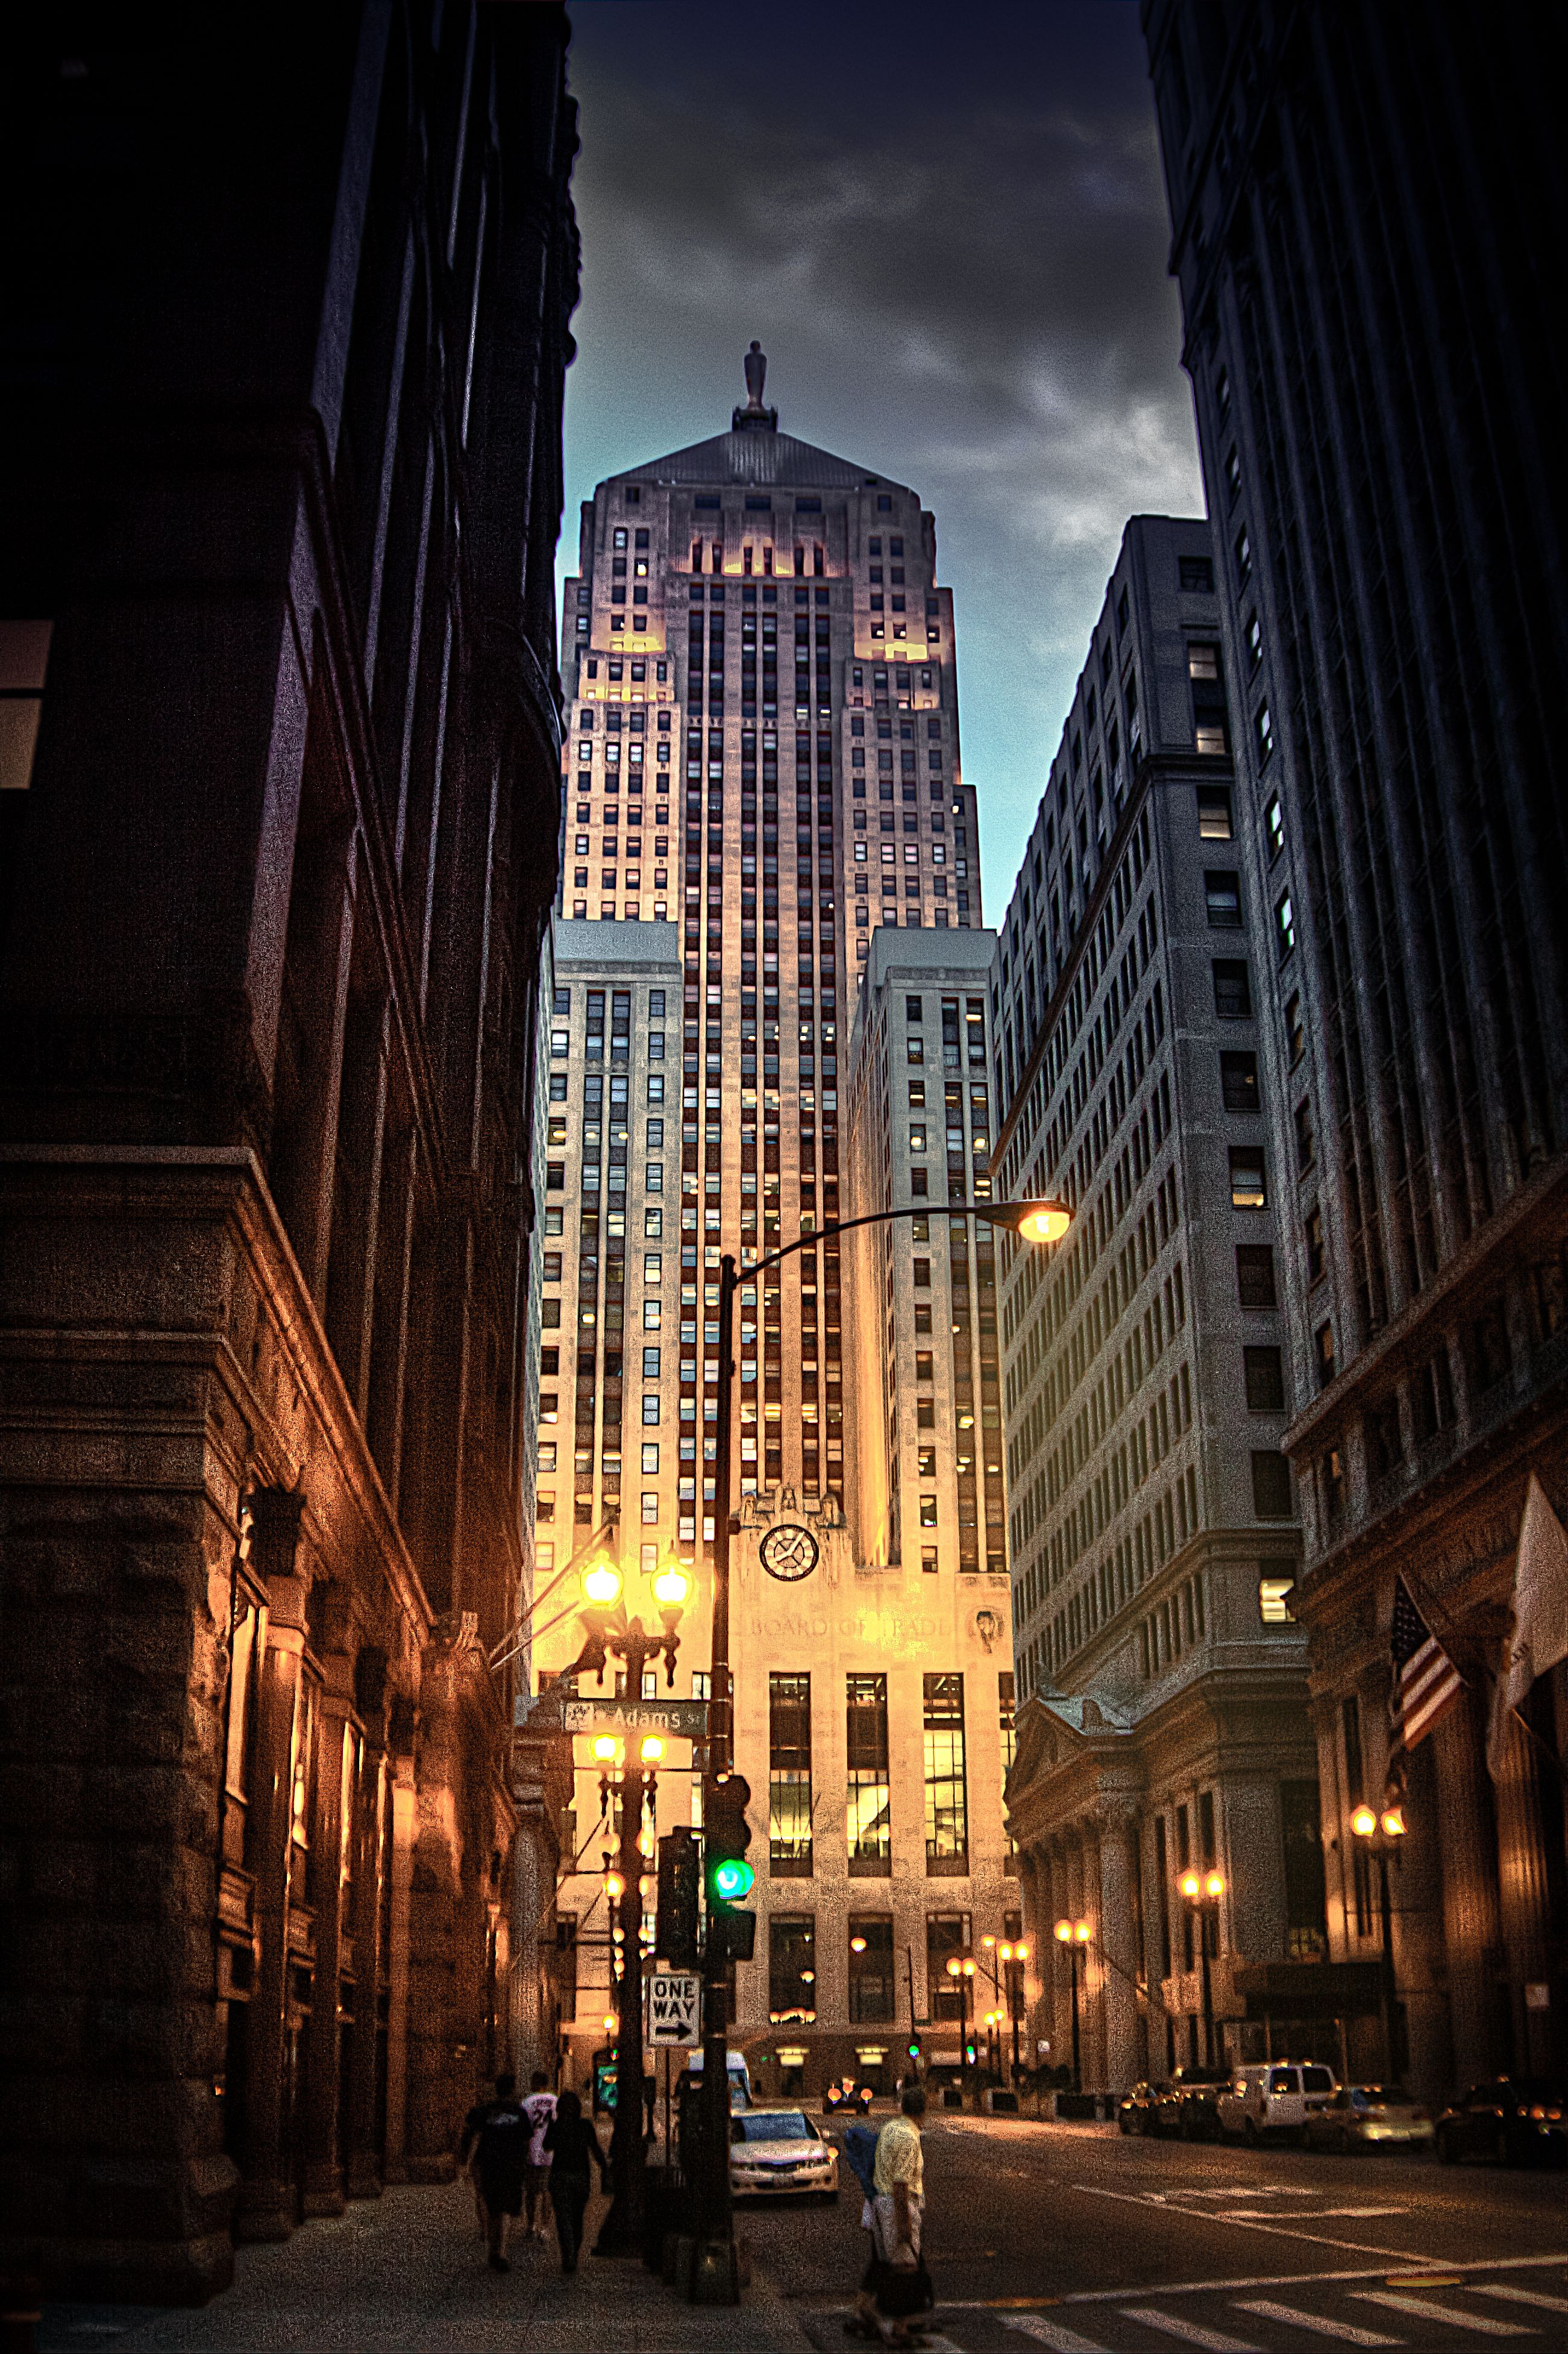 Chicago Board Of Trade Building - [605 Ft] - W Jackson Boulevard | Chicago photos, Chicago buildings, Chicago city